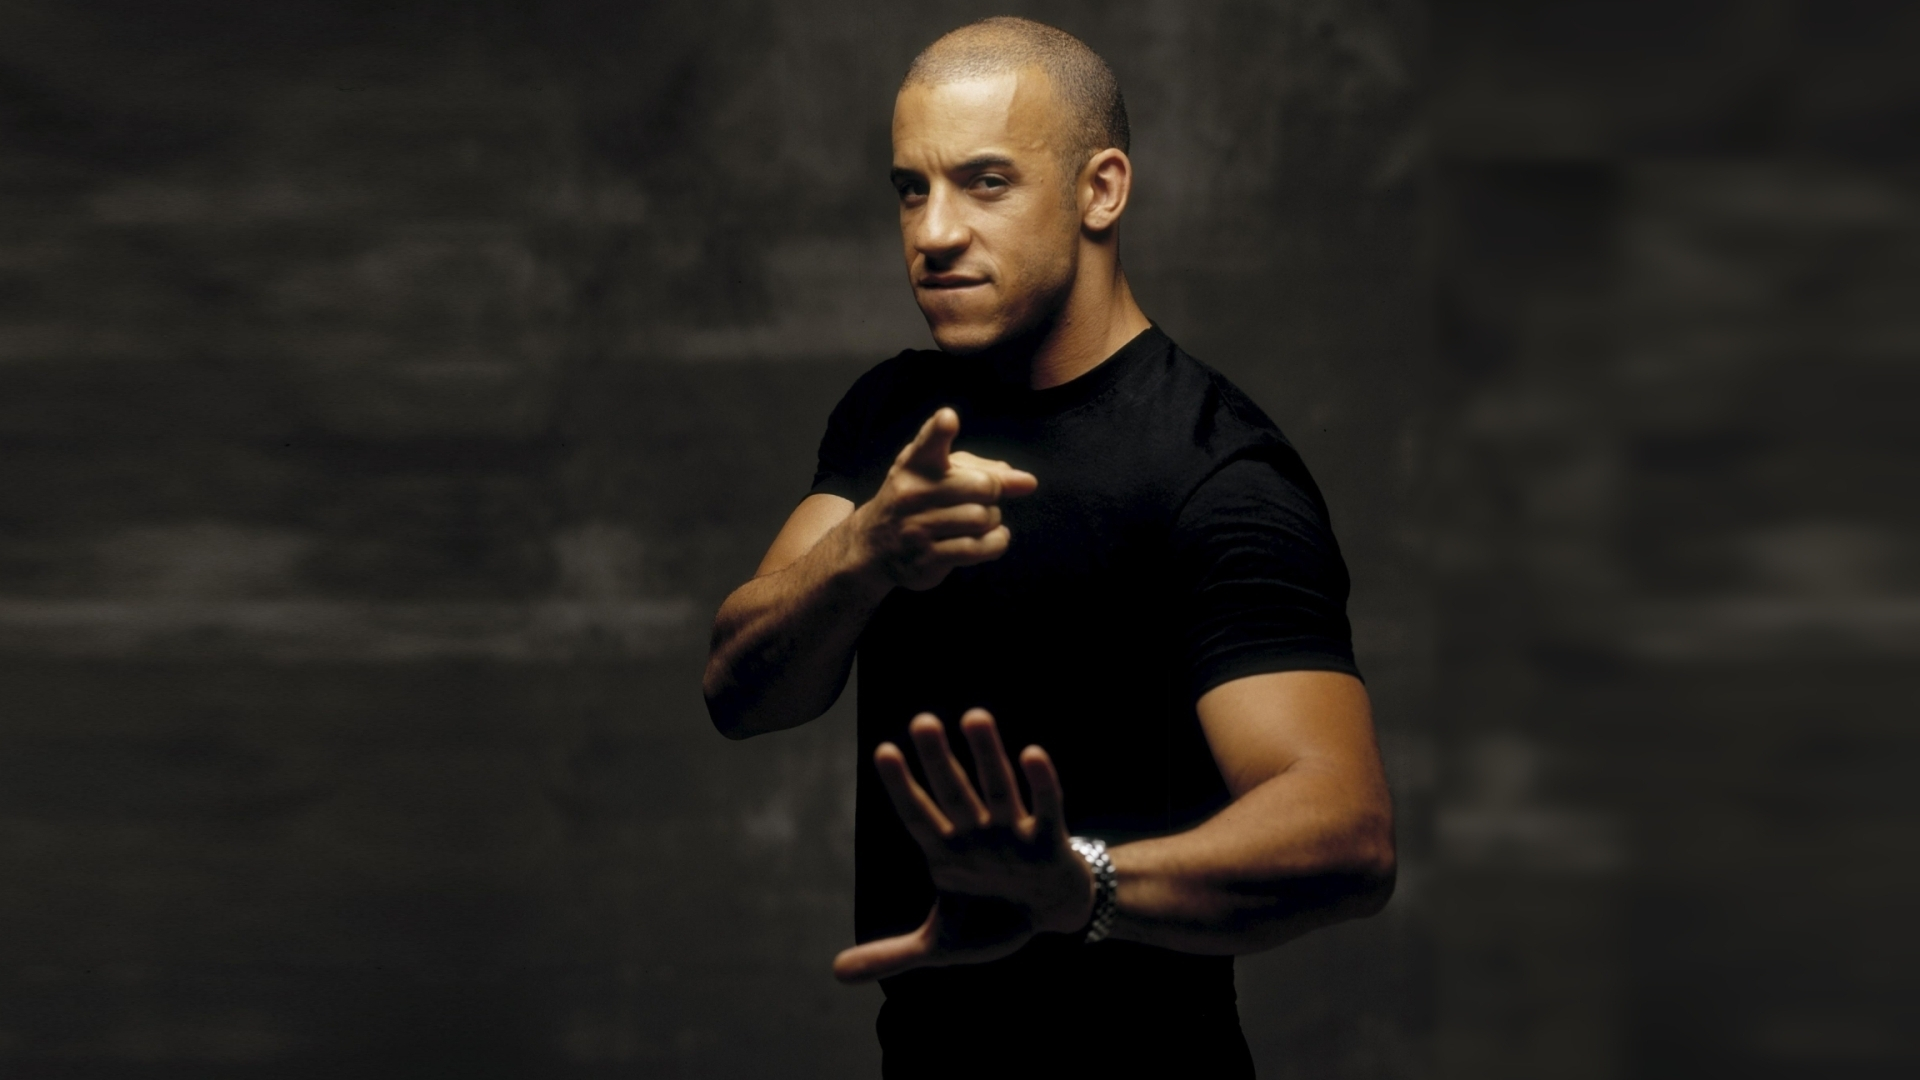 Vin Diesel Awesome HD Image Wallpaper